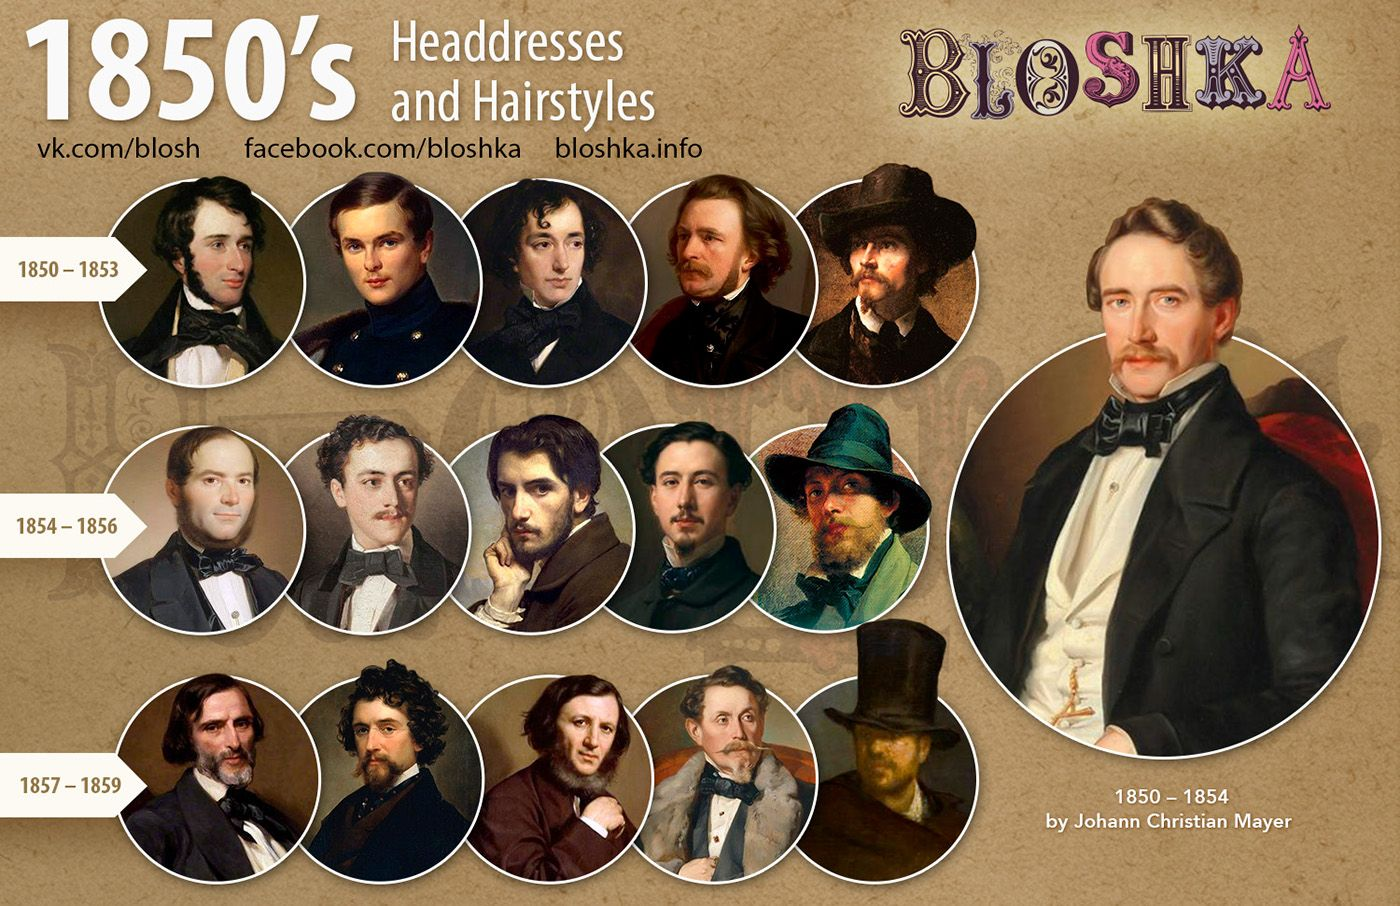 19th century. men's headdresses and hairstyles 1850's | xix